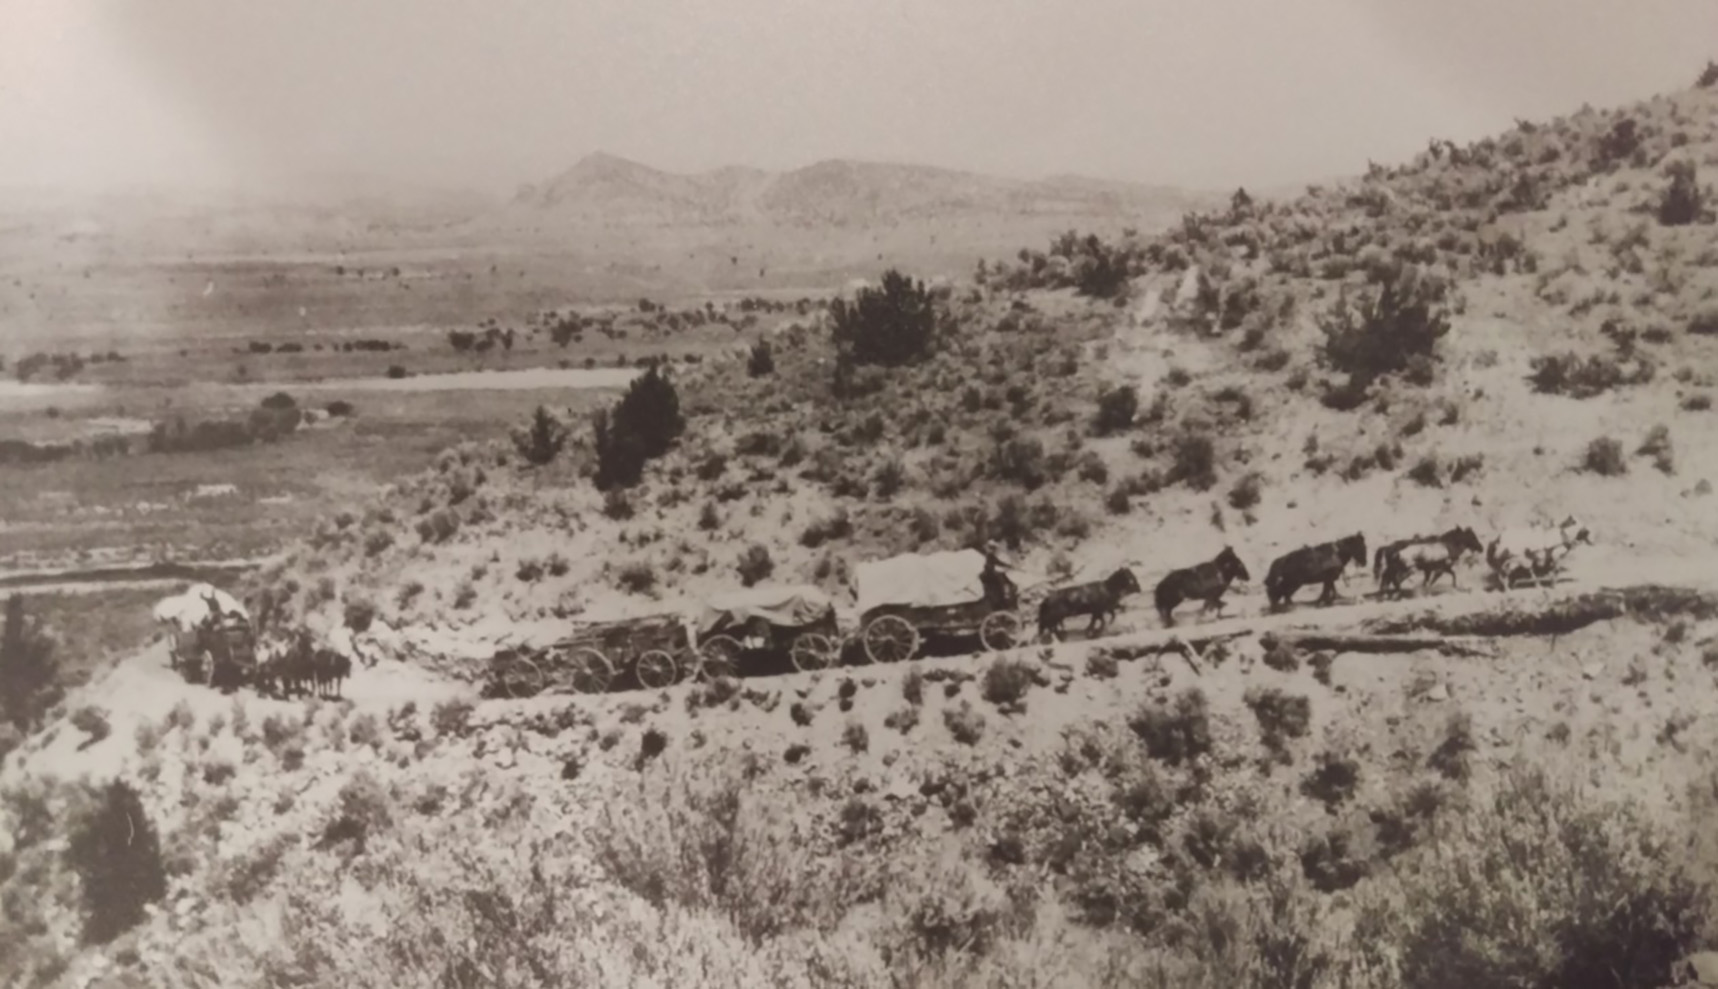 Freight wagons climbing the grade west of Prineville, c. 1915.